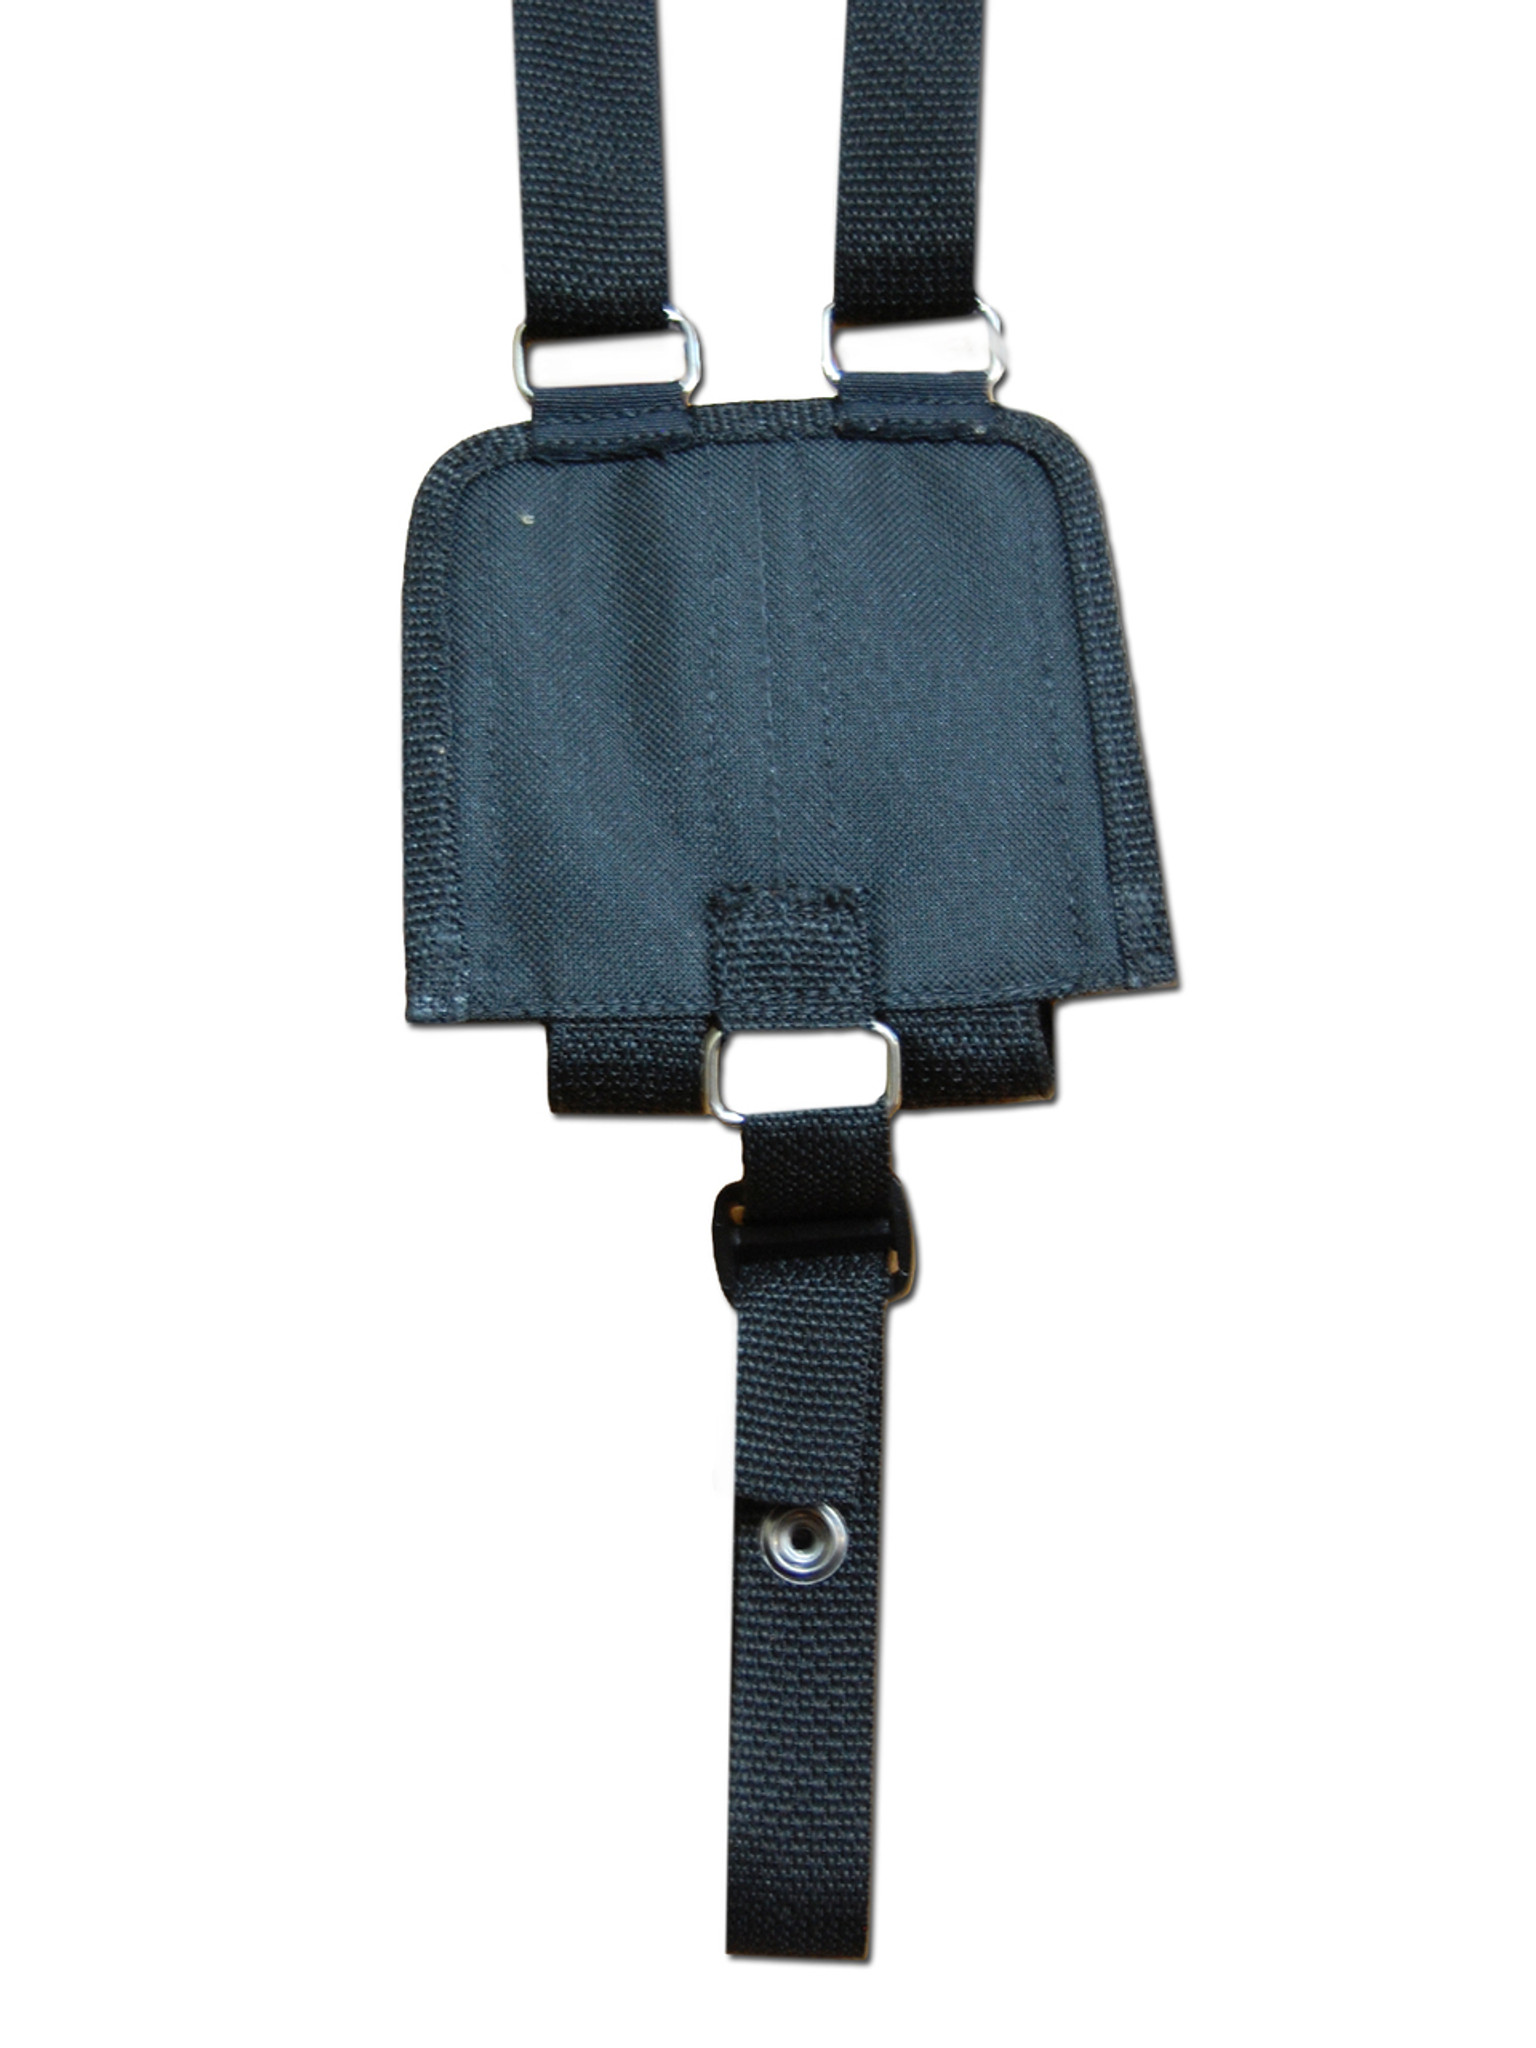 Ambidextrous Horizontal Shoulder Holster with Magazine Pouch